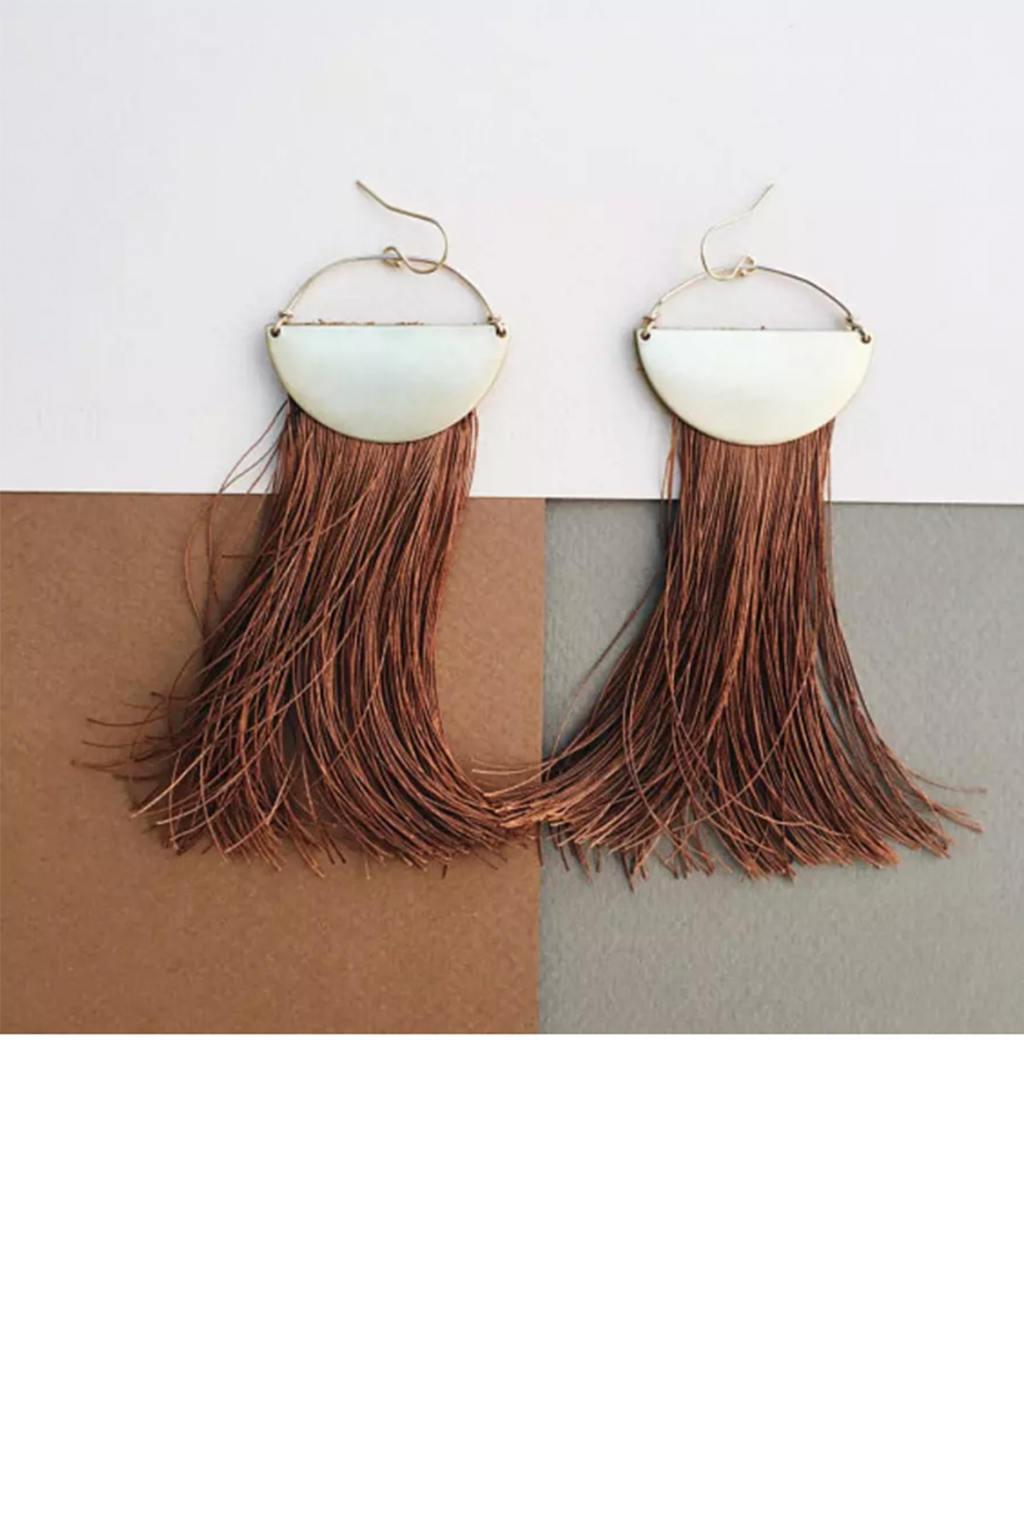 Tumble - On The Move: Pure Silk Tassel Earrings